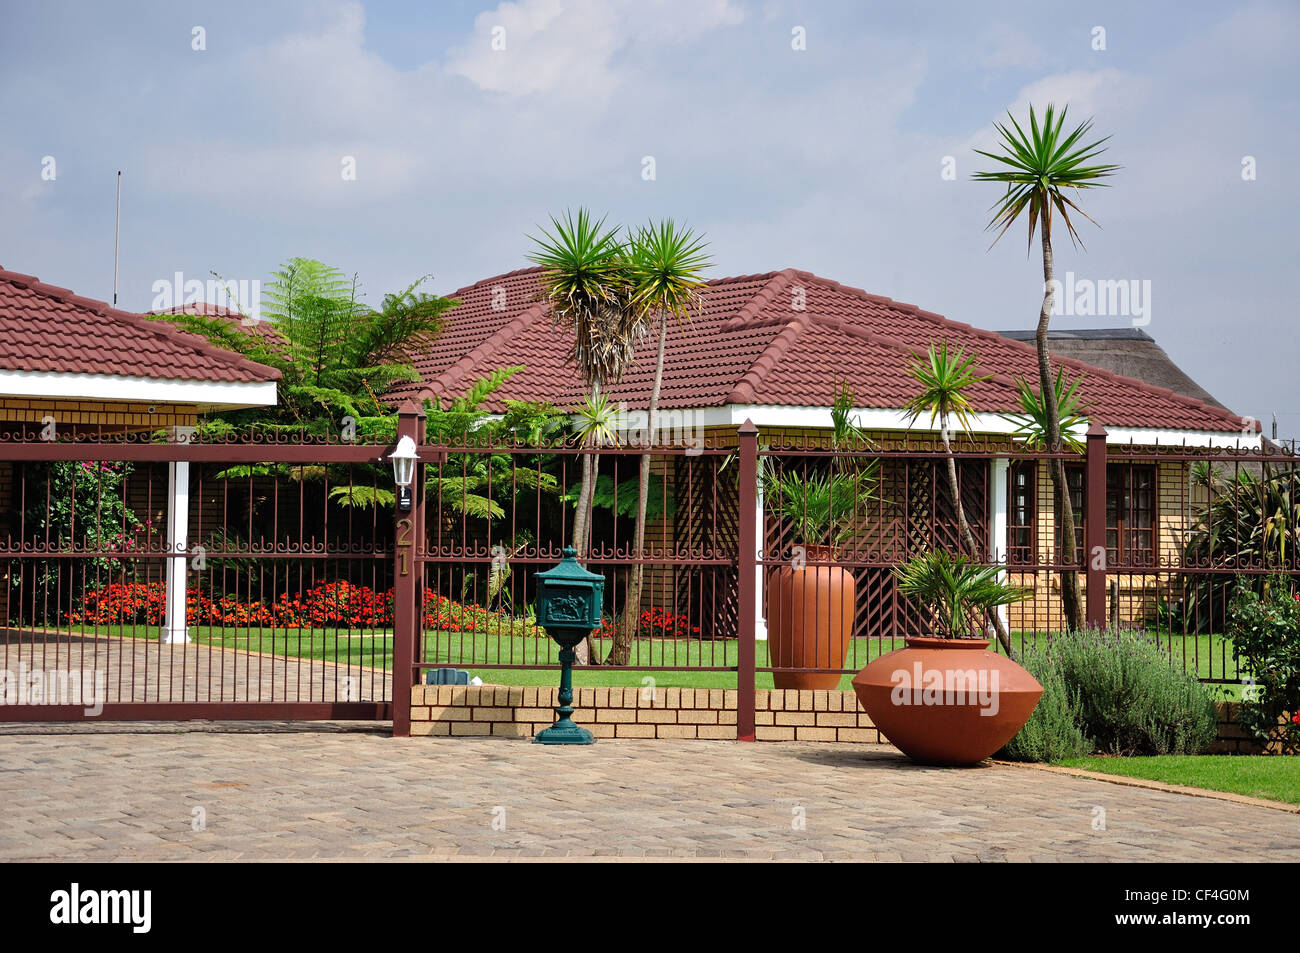 Typical house with security fence nigel gauteng province